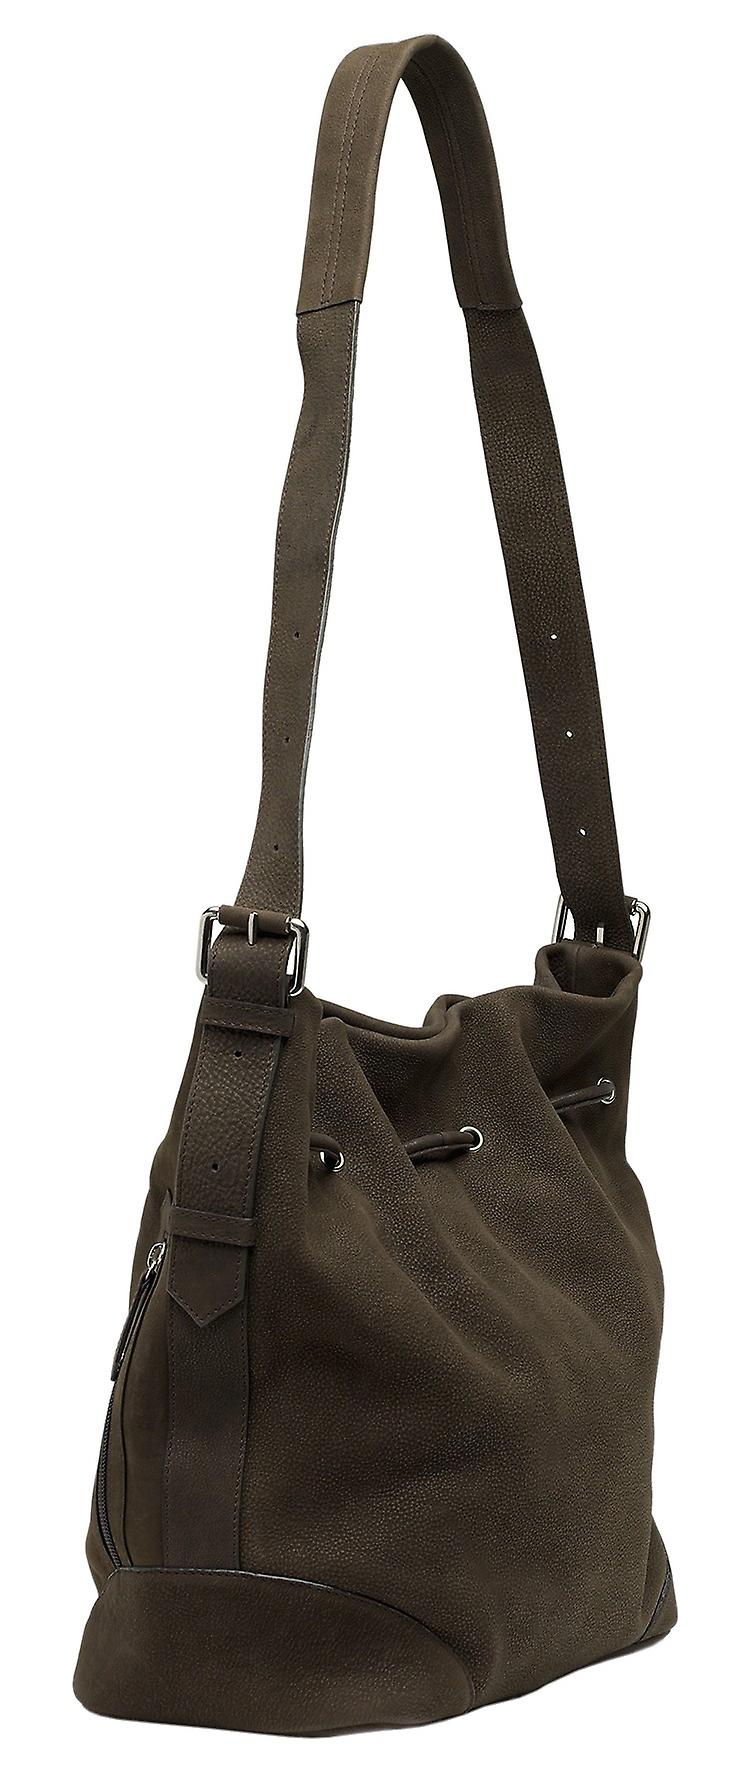 Burgmeister ladies shoulder bag T214-215A leather dark brown